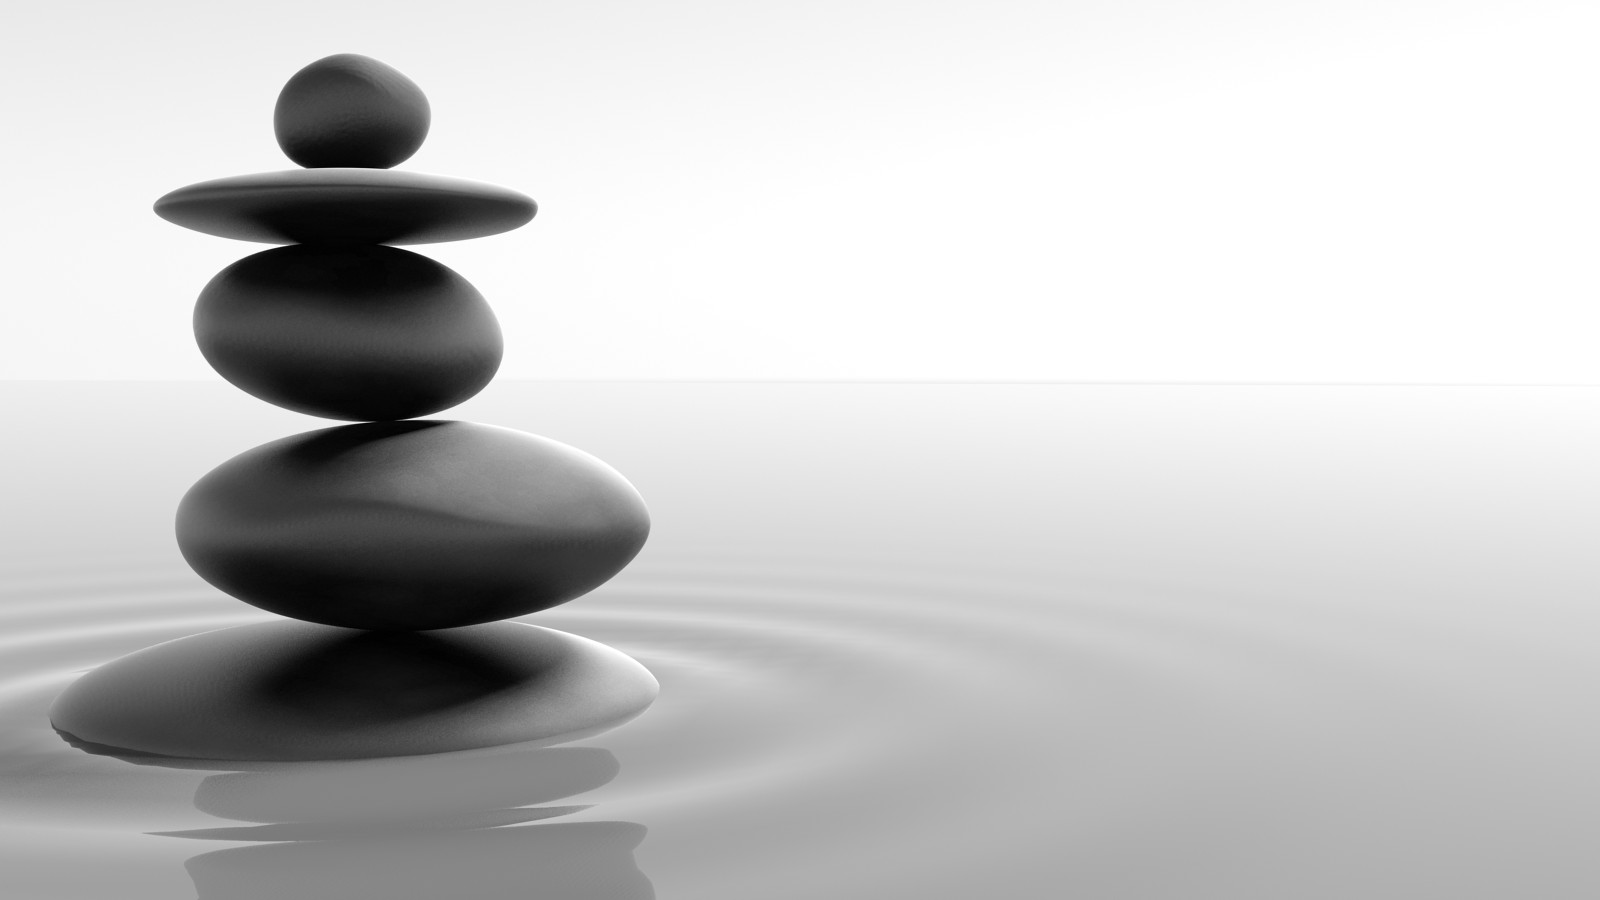 Zen Tao Stones in Balance Peace Wallpaper Download 1600x900